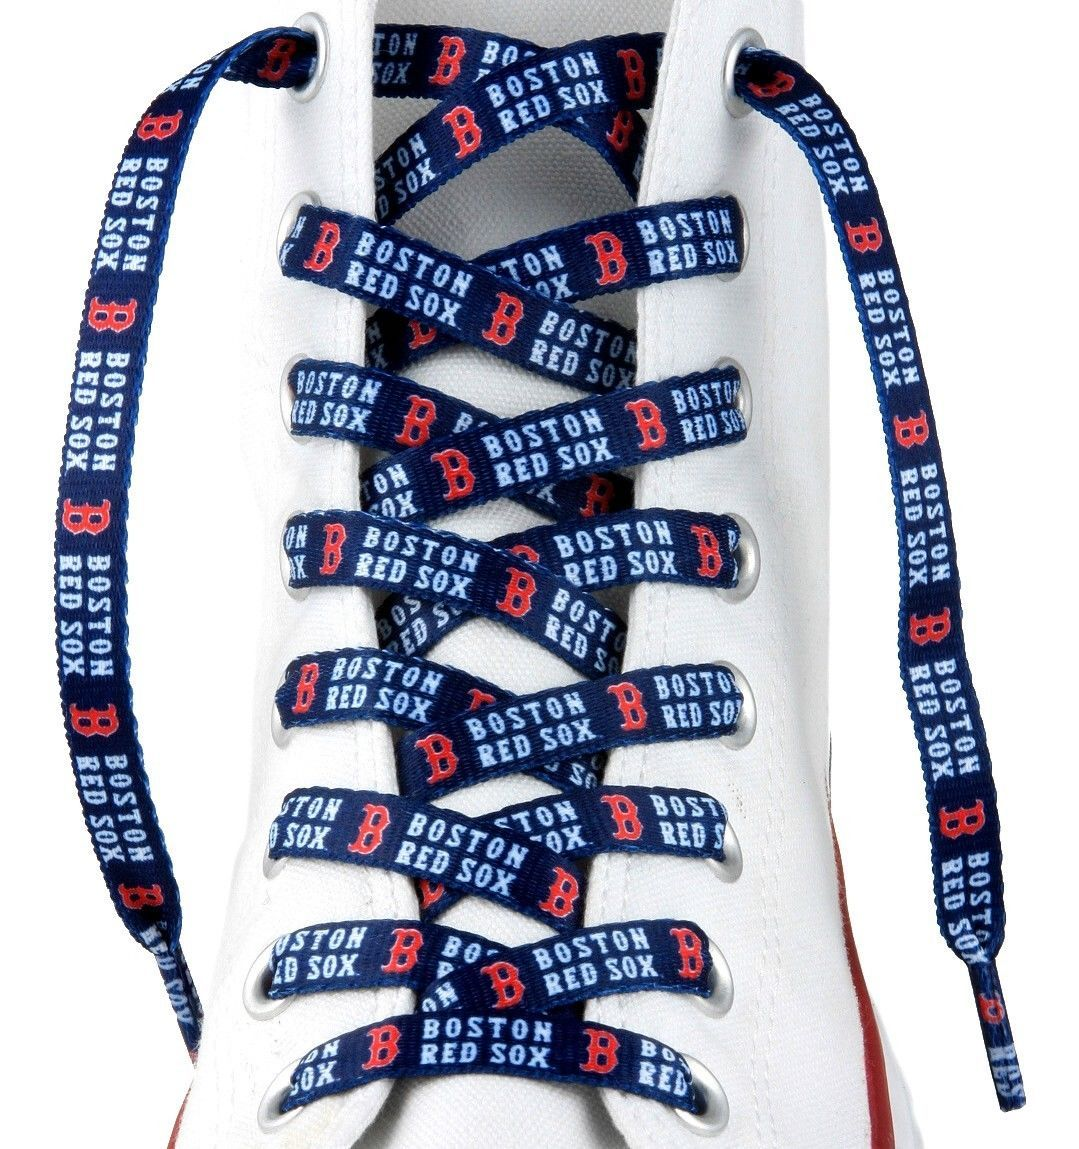 "BOSTON RED SOX TEAM LOGO SHOE LACES 54"" *LACEUPS* GAME DAY PARTY MLB BASEBALL"